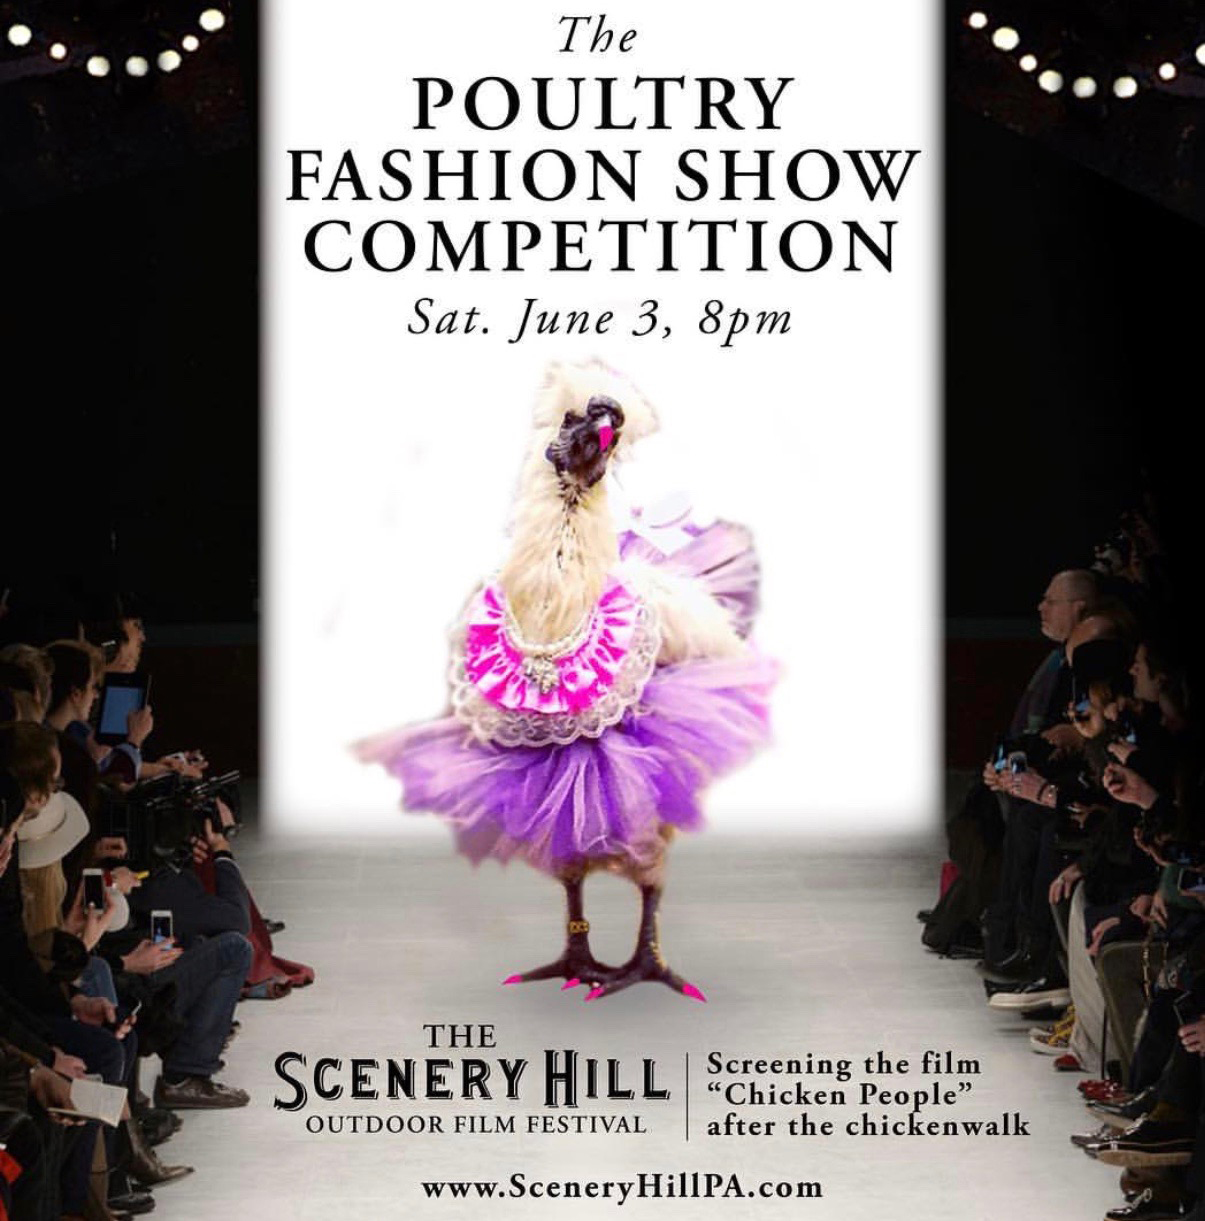 Poultry0610_Poster-1 Poultry Fashion Show poster. Poultry 0610